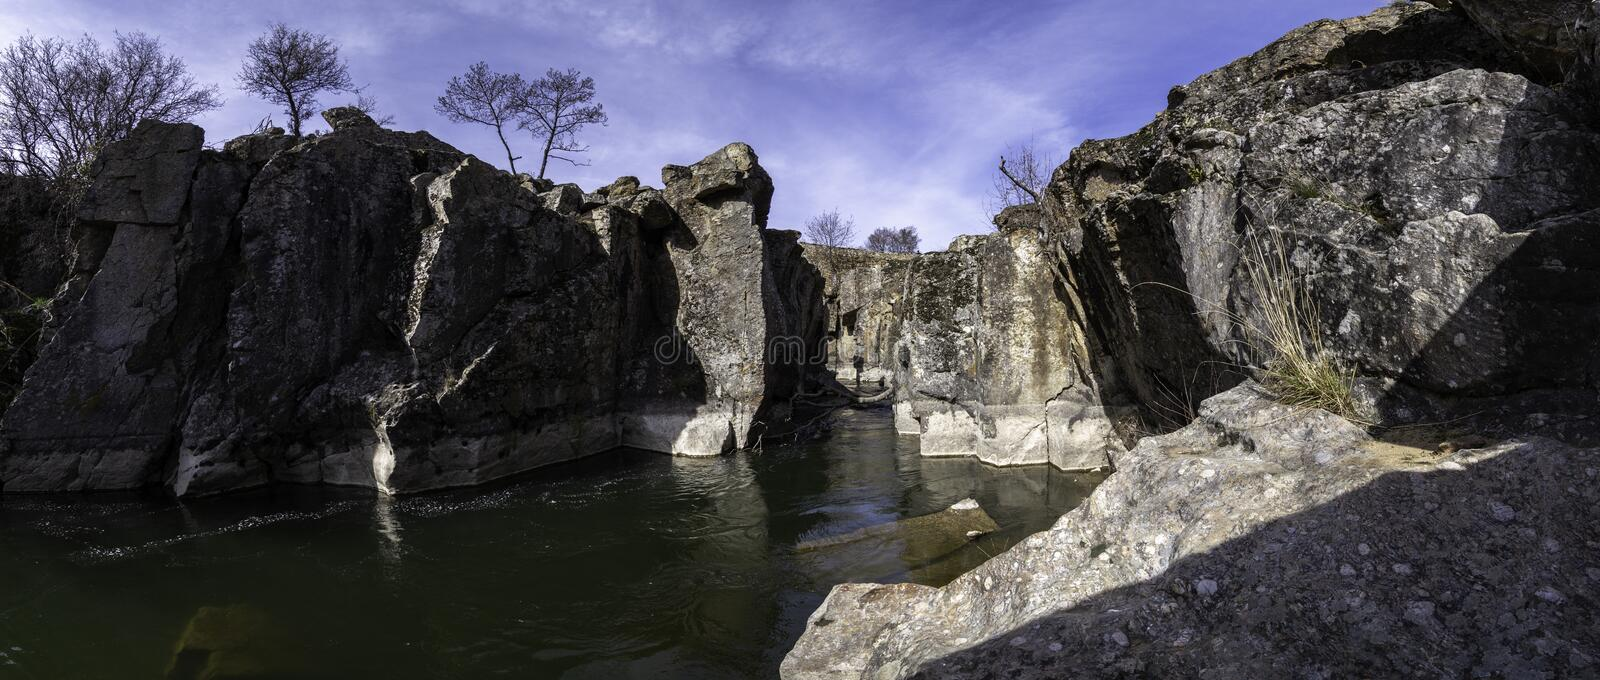 Panoramic photograph of the canyon through which the Lozoya River flows, Madrid, Spain. Panoramic photograph of the canyon through which the Lozoya River flows stock photos